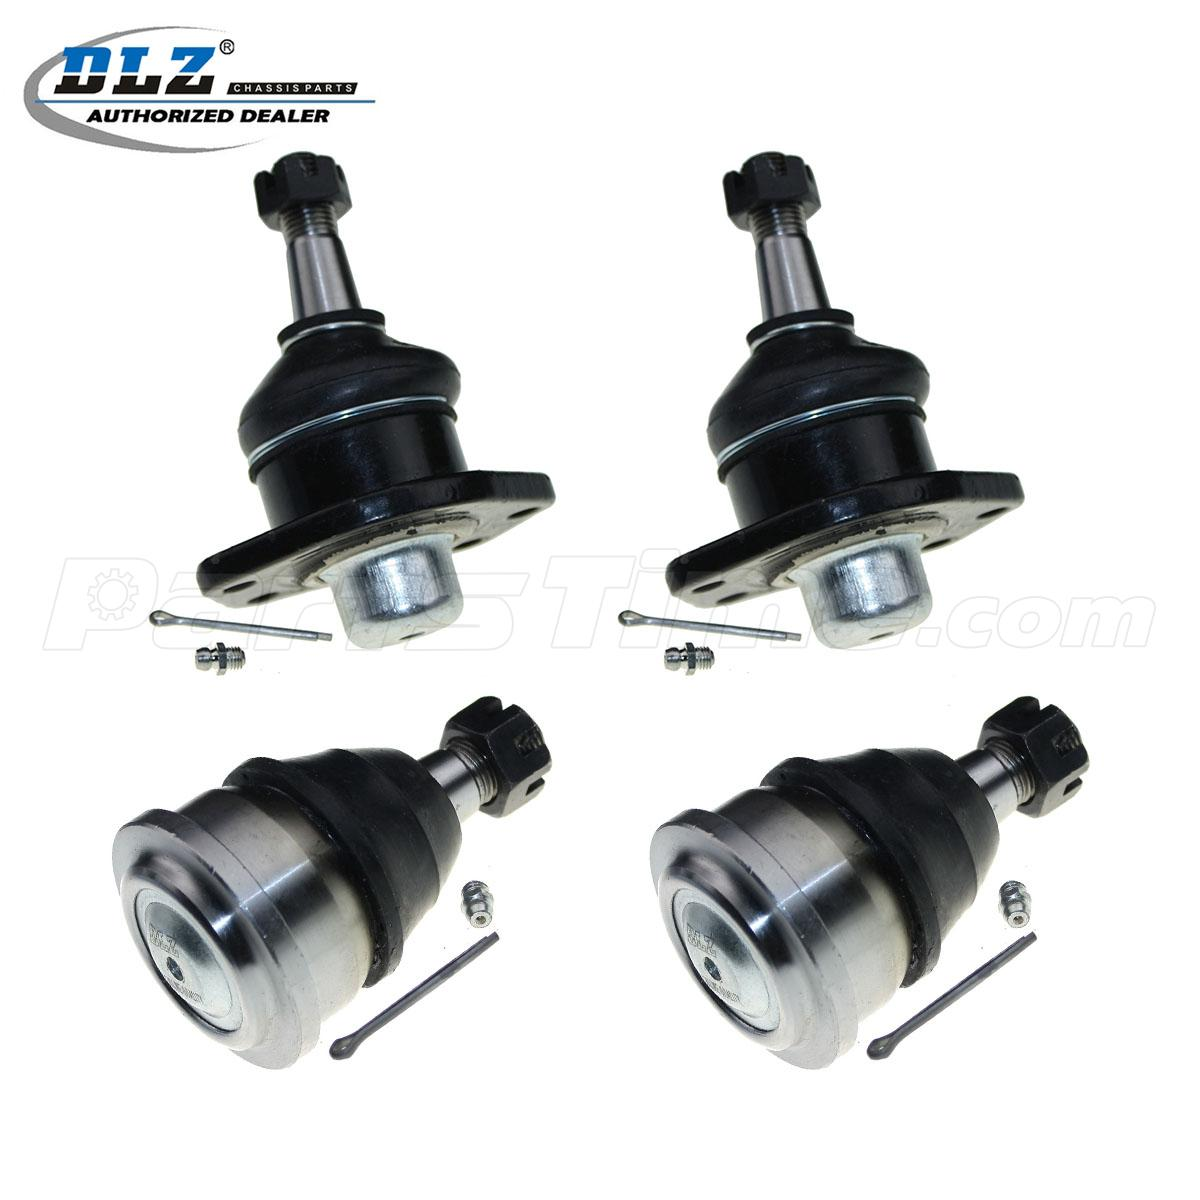 Brand New 4pc Front Lower + Upper Ball Joint Kit For 1971